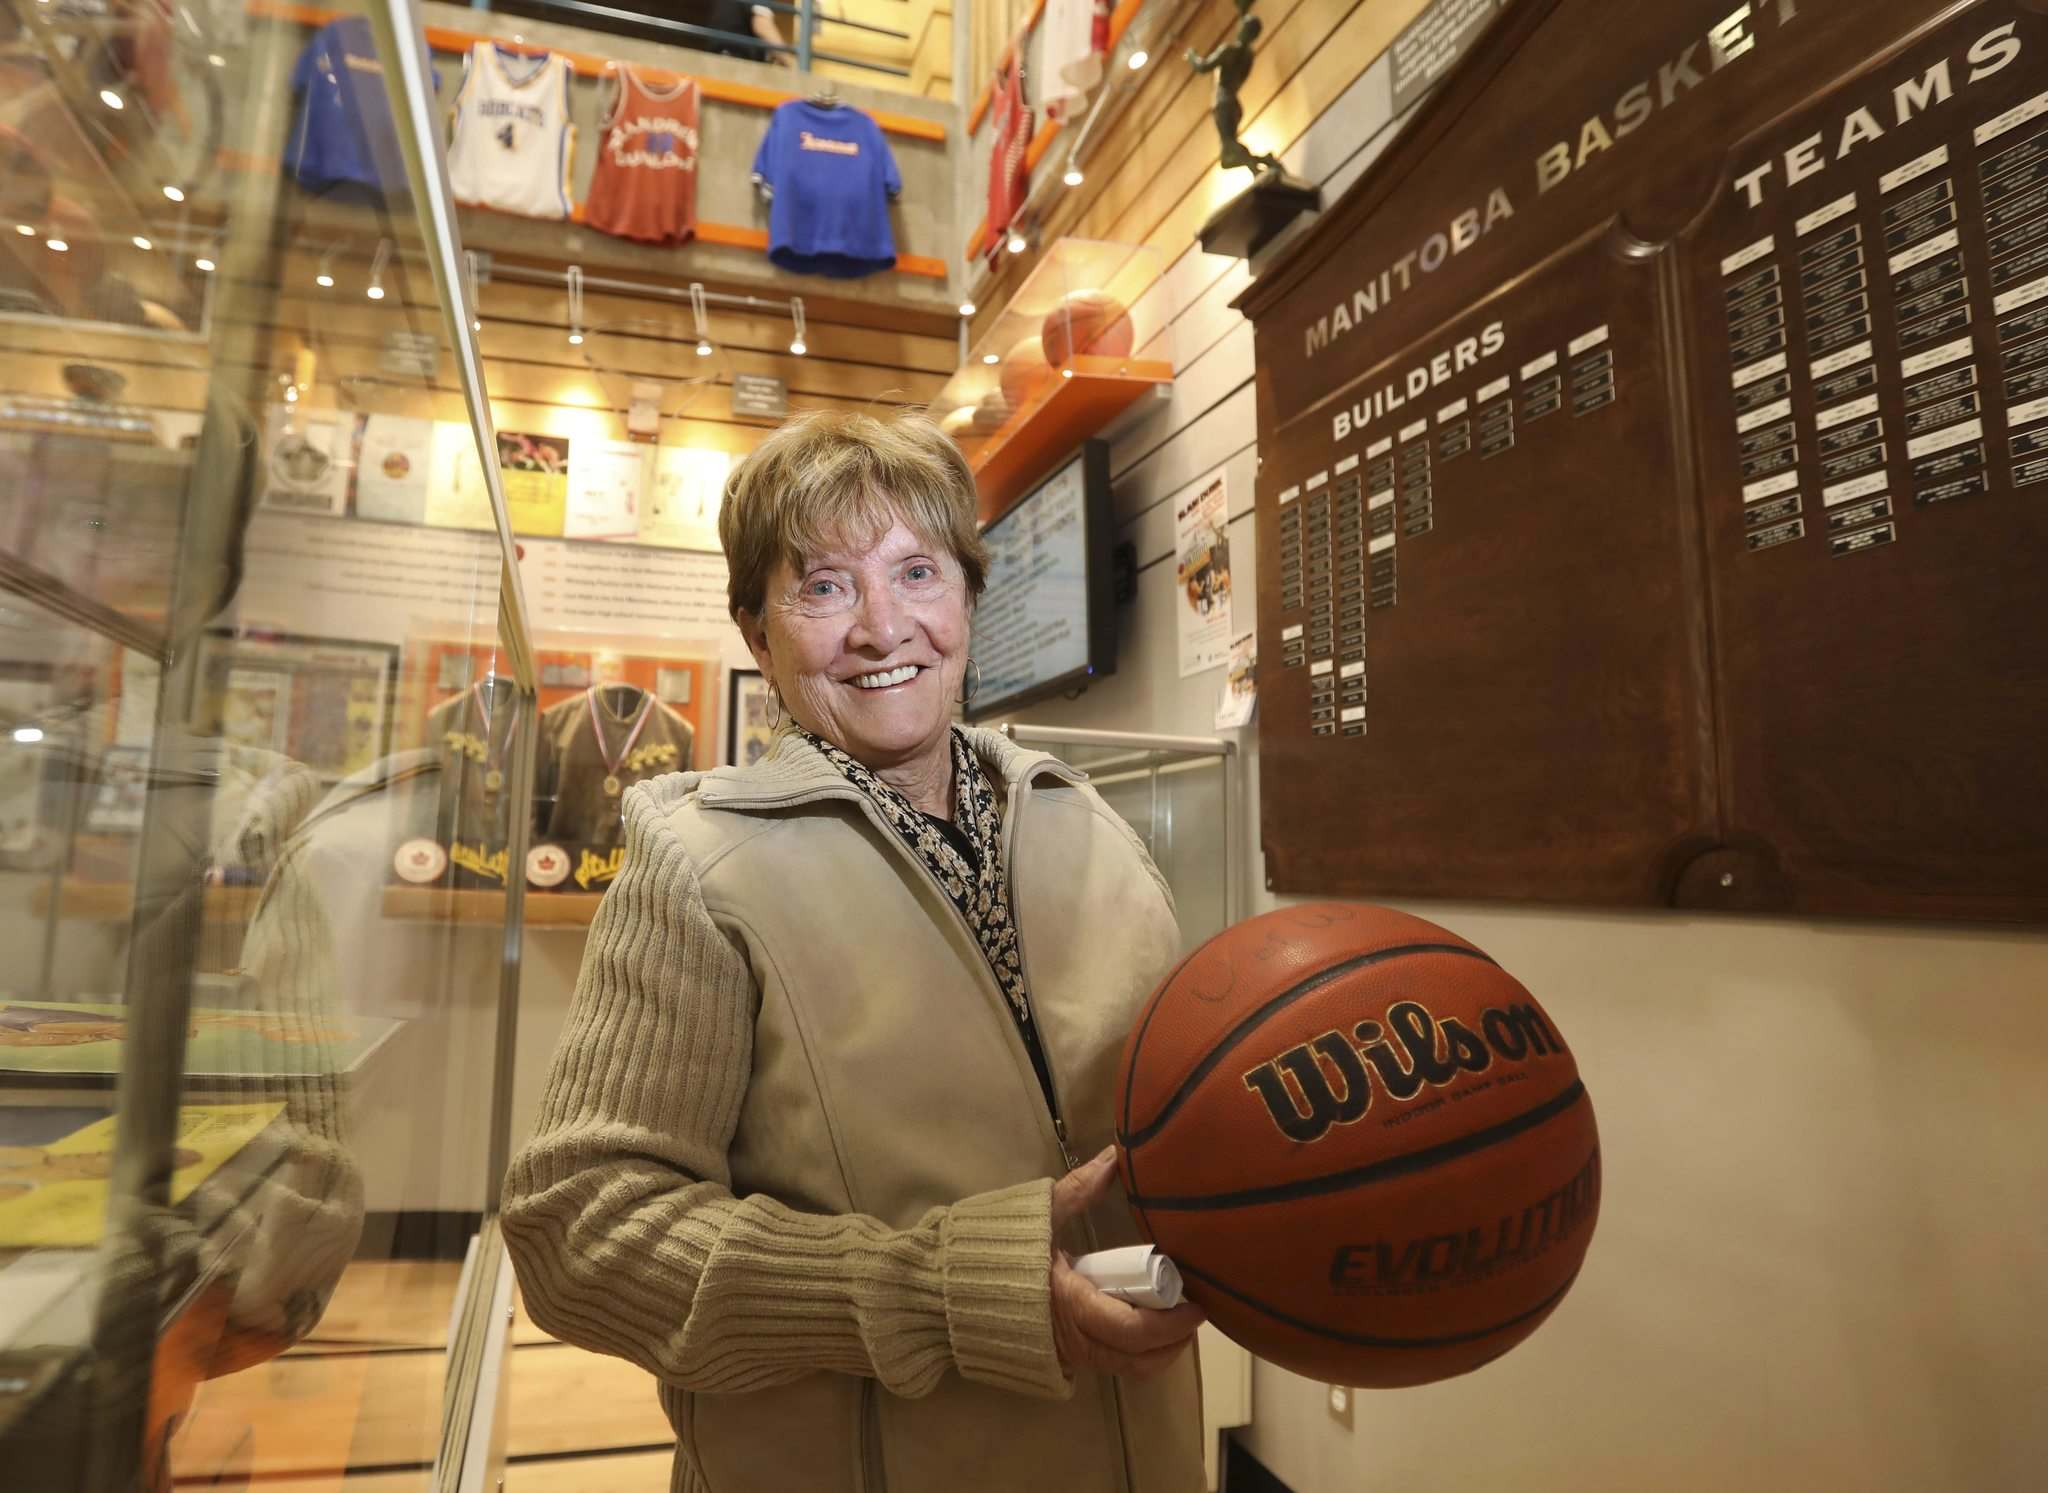 RUTH BONNEVILLE / WINNIPEG FREE PRESS</p><p>Betty Butler represents her husband, Dennis Alvestad, who was announced as an inductee into the Manitoba Basketball Hall of Fame on Tuesday.</p>